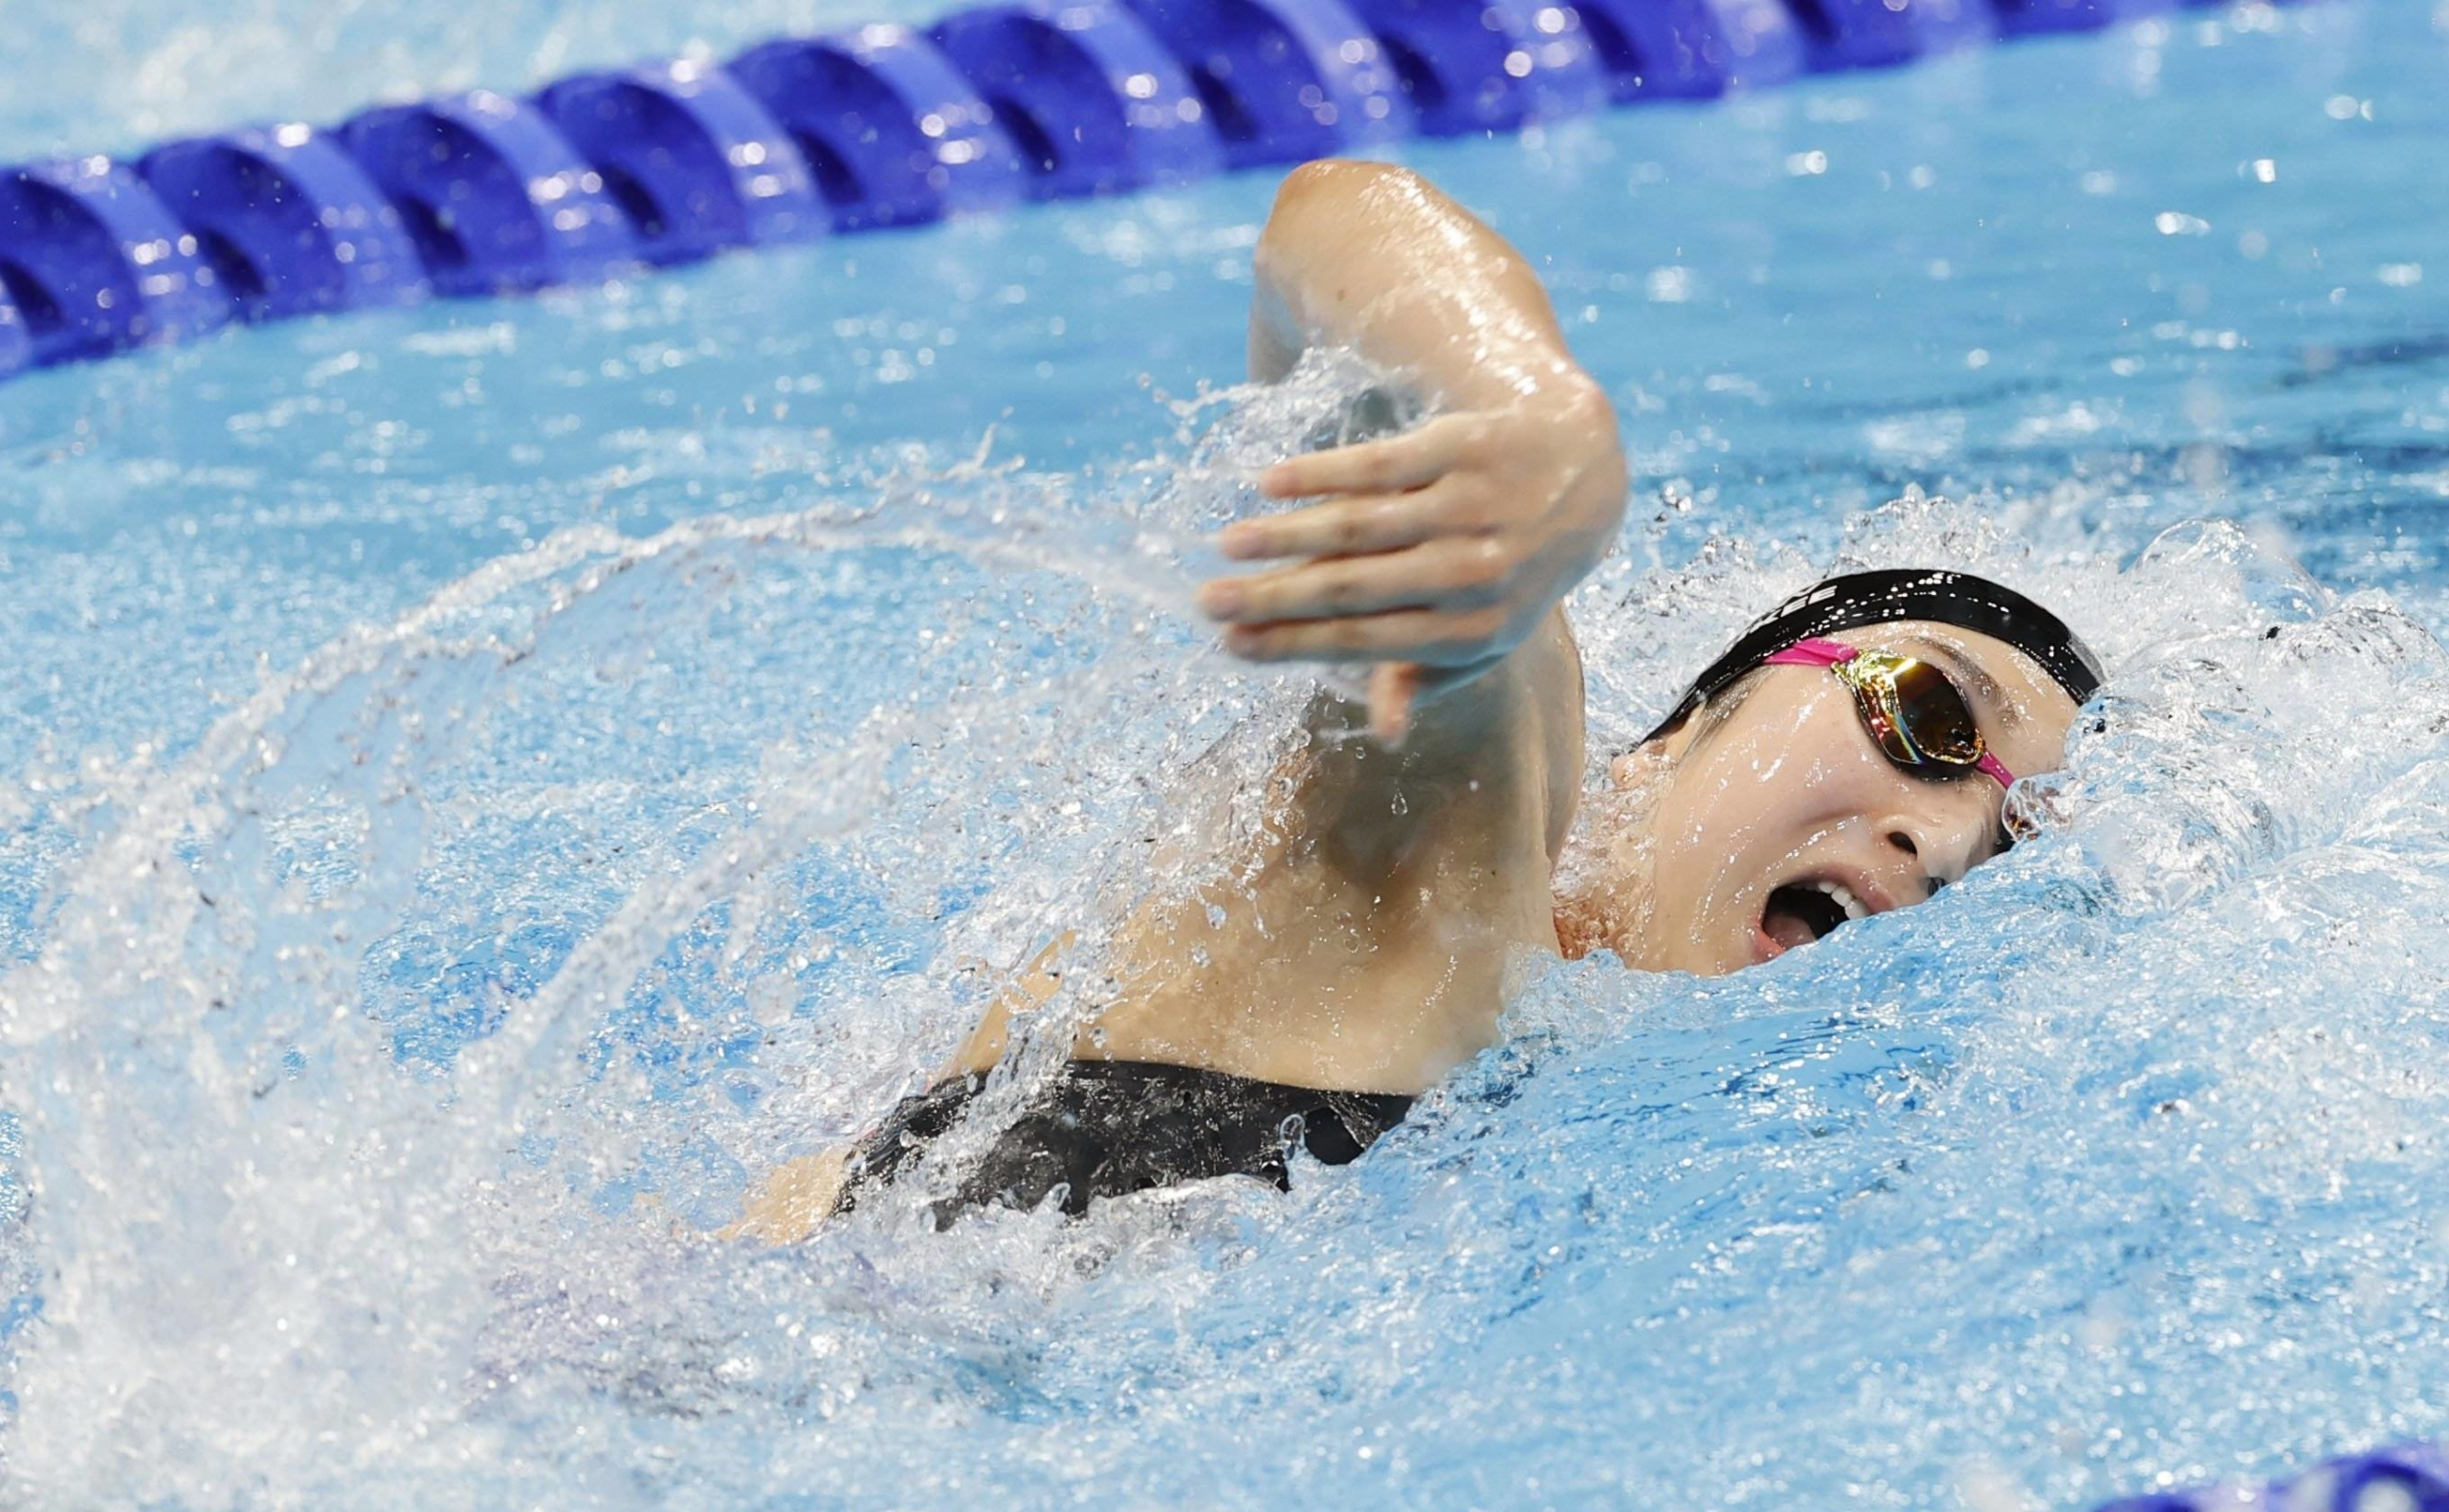 Swimmer Rikako Ikee competes in her 4x100-meter freestyle relay heat at the Tokyo Olympics on Saturday.   KYODO